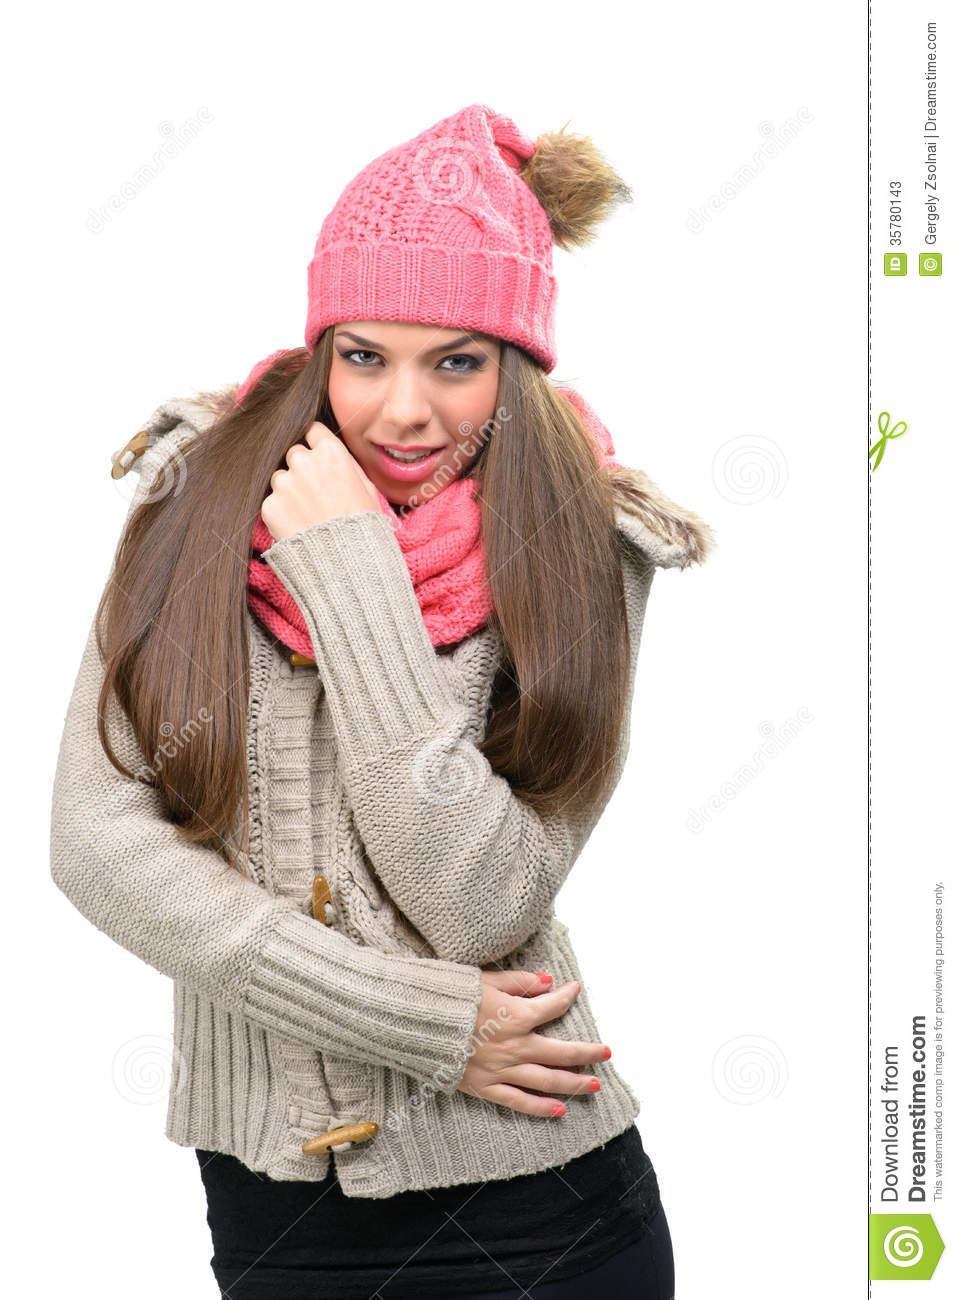 Fashion Model - Winter Clothes Hats Scarves In Indoor Stock Image - Image 35780143